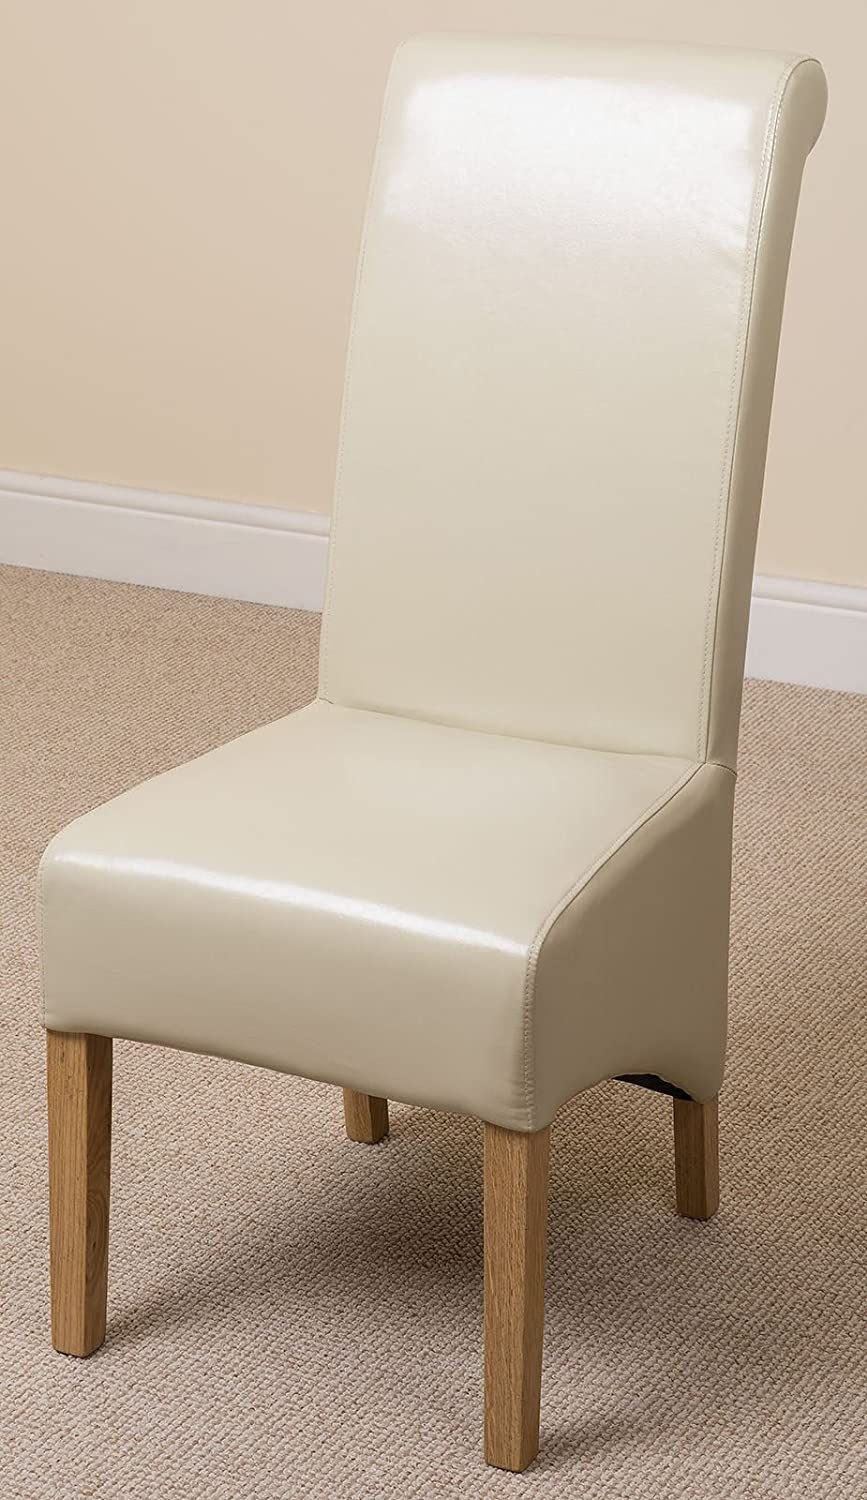 Amazon.com - X6 Montana Scroll Back Leather Dining Chairs (Ivory) by OAK FURNITURE KING - Chairs & Amazon.com - X6 Montana Scroll Back Leather Dining Chairs (Ivory) by ...